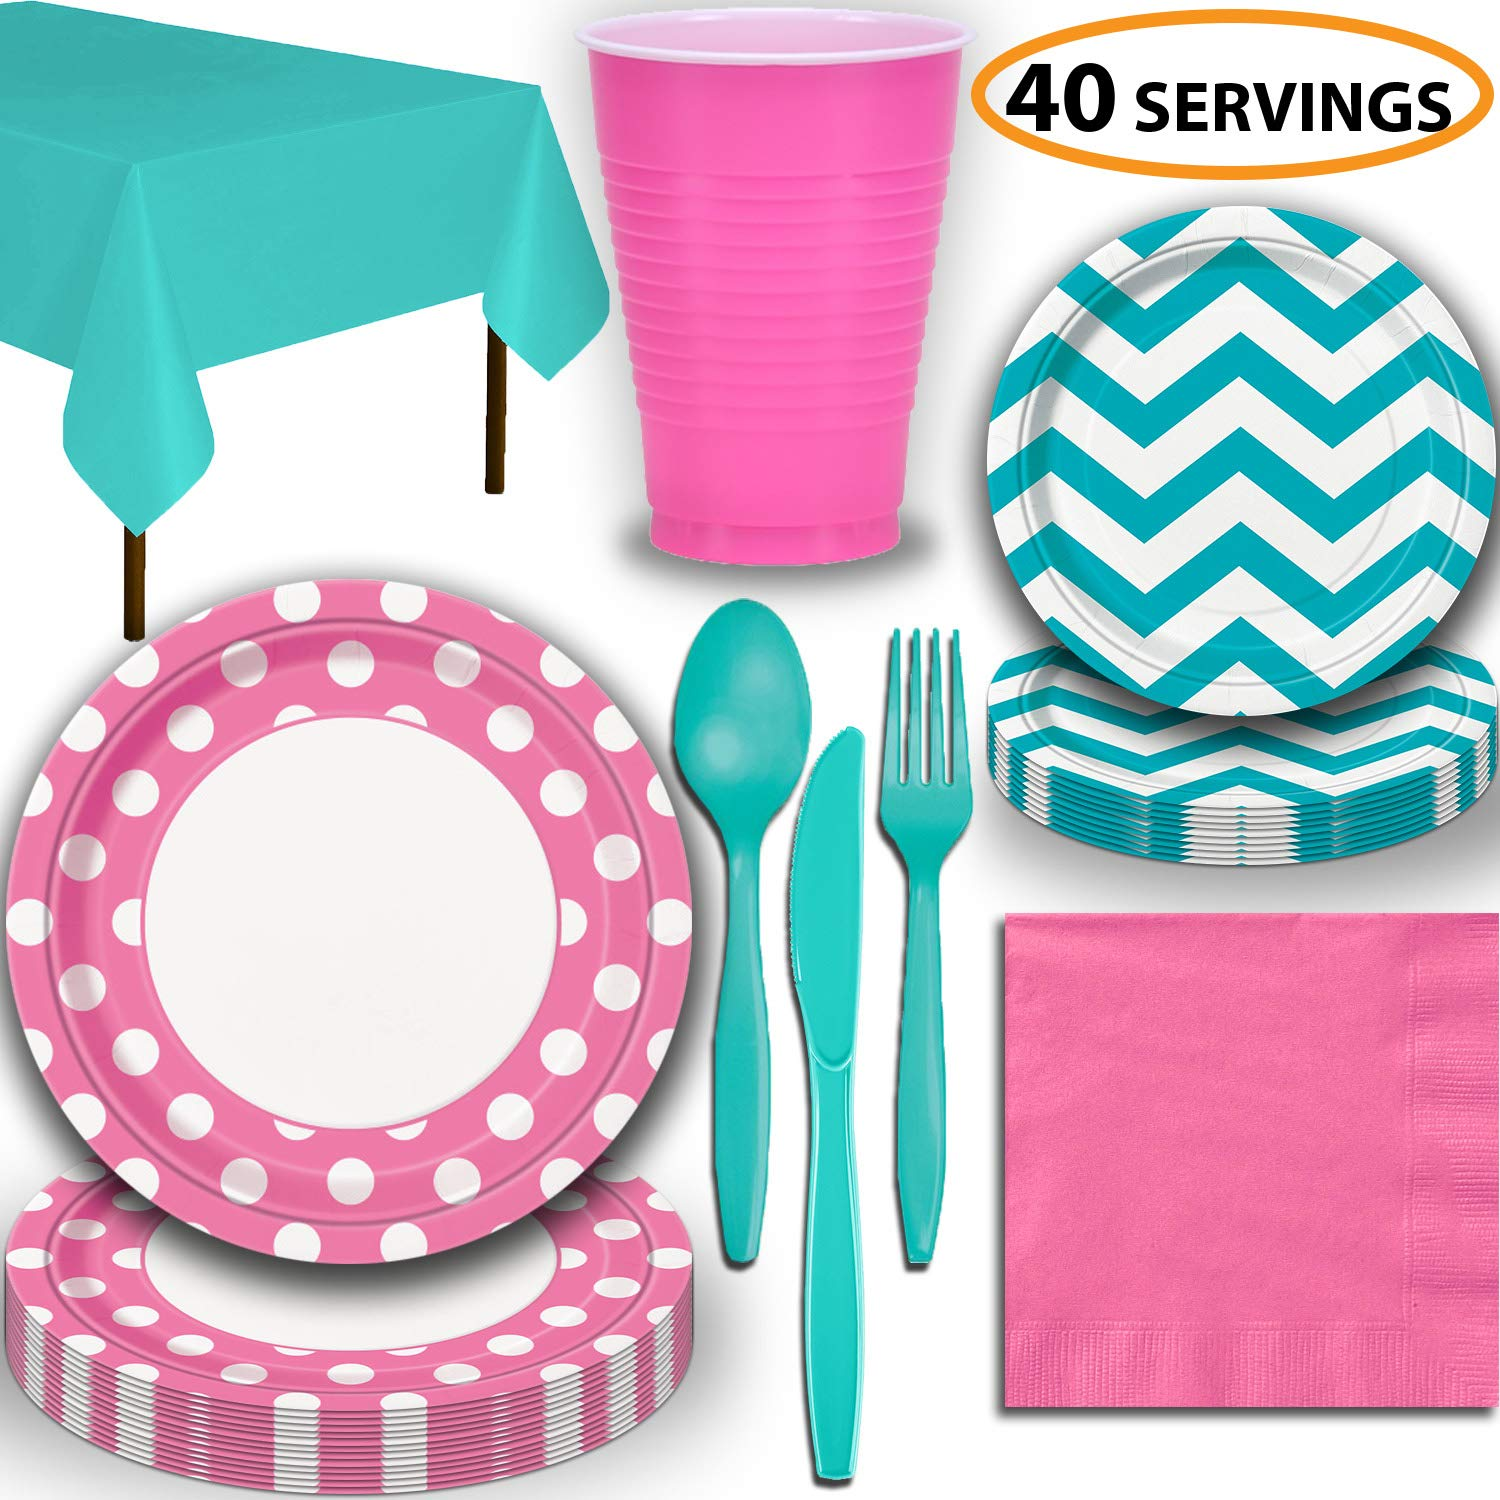 Disposable Tableware, 40 Sets - Hot Pink and Caribbean Teal - Dotted Dinner Plates, Chevron Dessert Plates, Cups, Lunch Napkins, Cutlery, and Tablecloths: Premium Quality Party Supplies Set